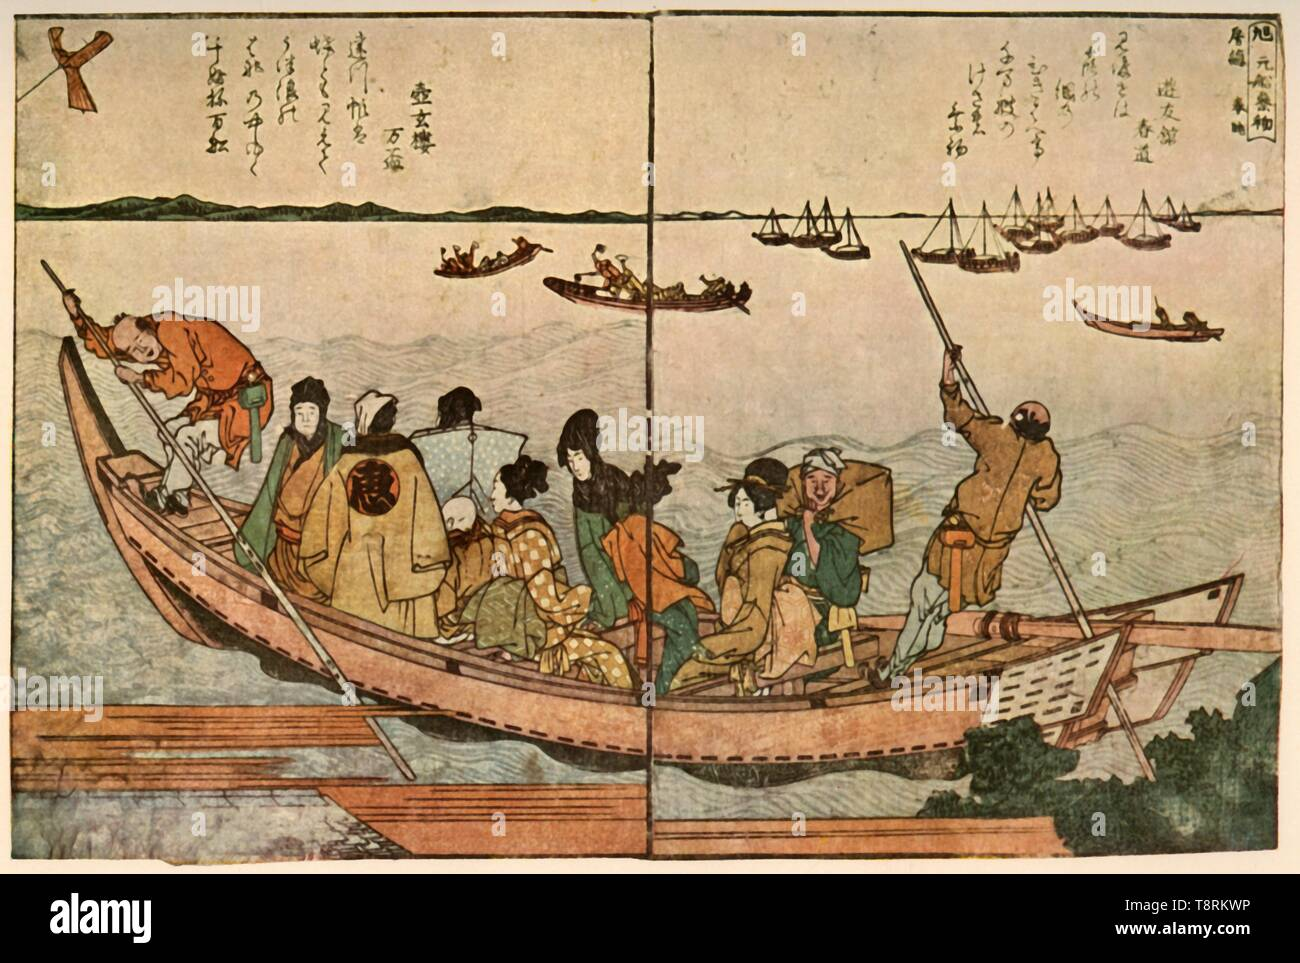 "Passengers on a boat crossing the Sumida River in Japan, c1804, (1924). Two boatmen punt their craft with long poles. From the ""Sumidagawa Ryogan Ichiran"" (Panoramic Views along the Banks of the Sumida River) by Hokusai, [c1804]. Published in ""Block Printing & Book Illustration in Japan"", by Louise Norton Brown. [George Routledge & Sons, Ltd., E. P. Dutton & Co., London & New York, 1924] - Stock Image"